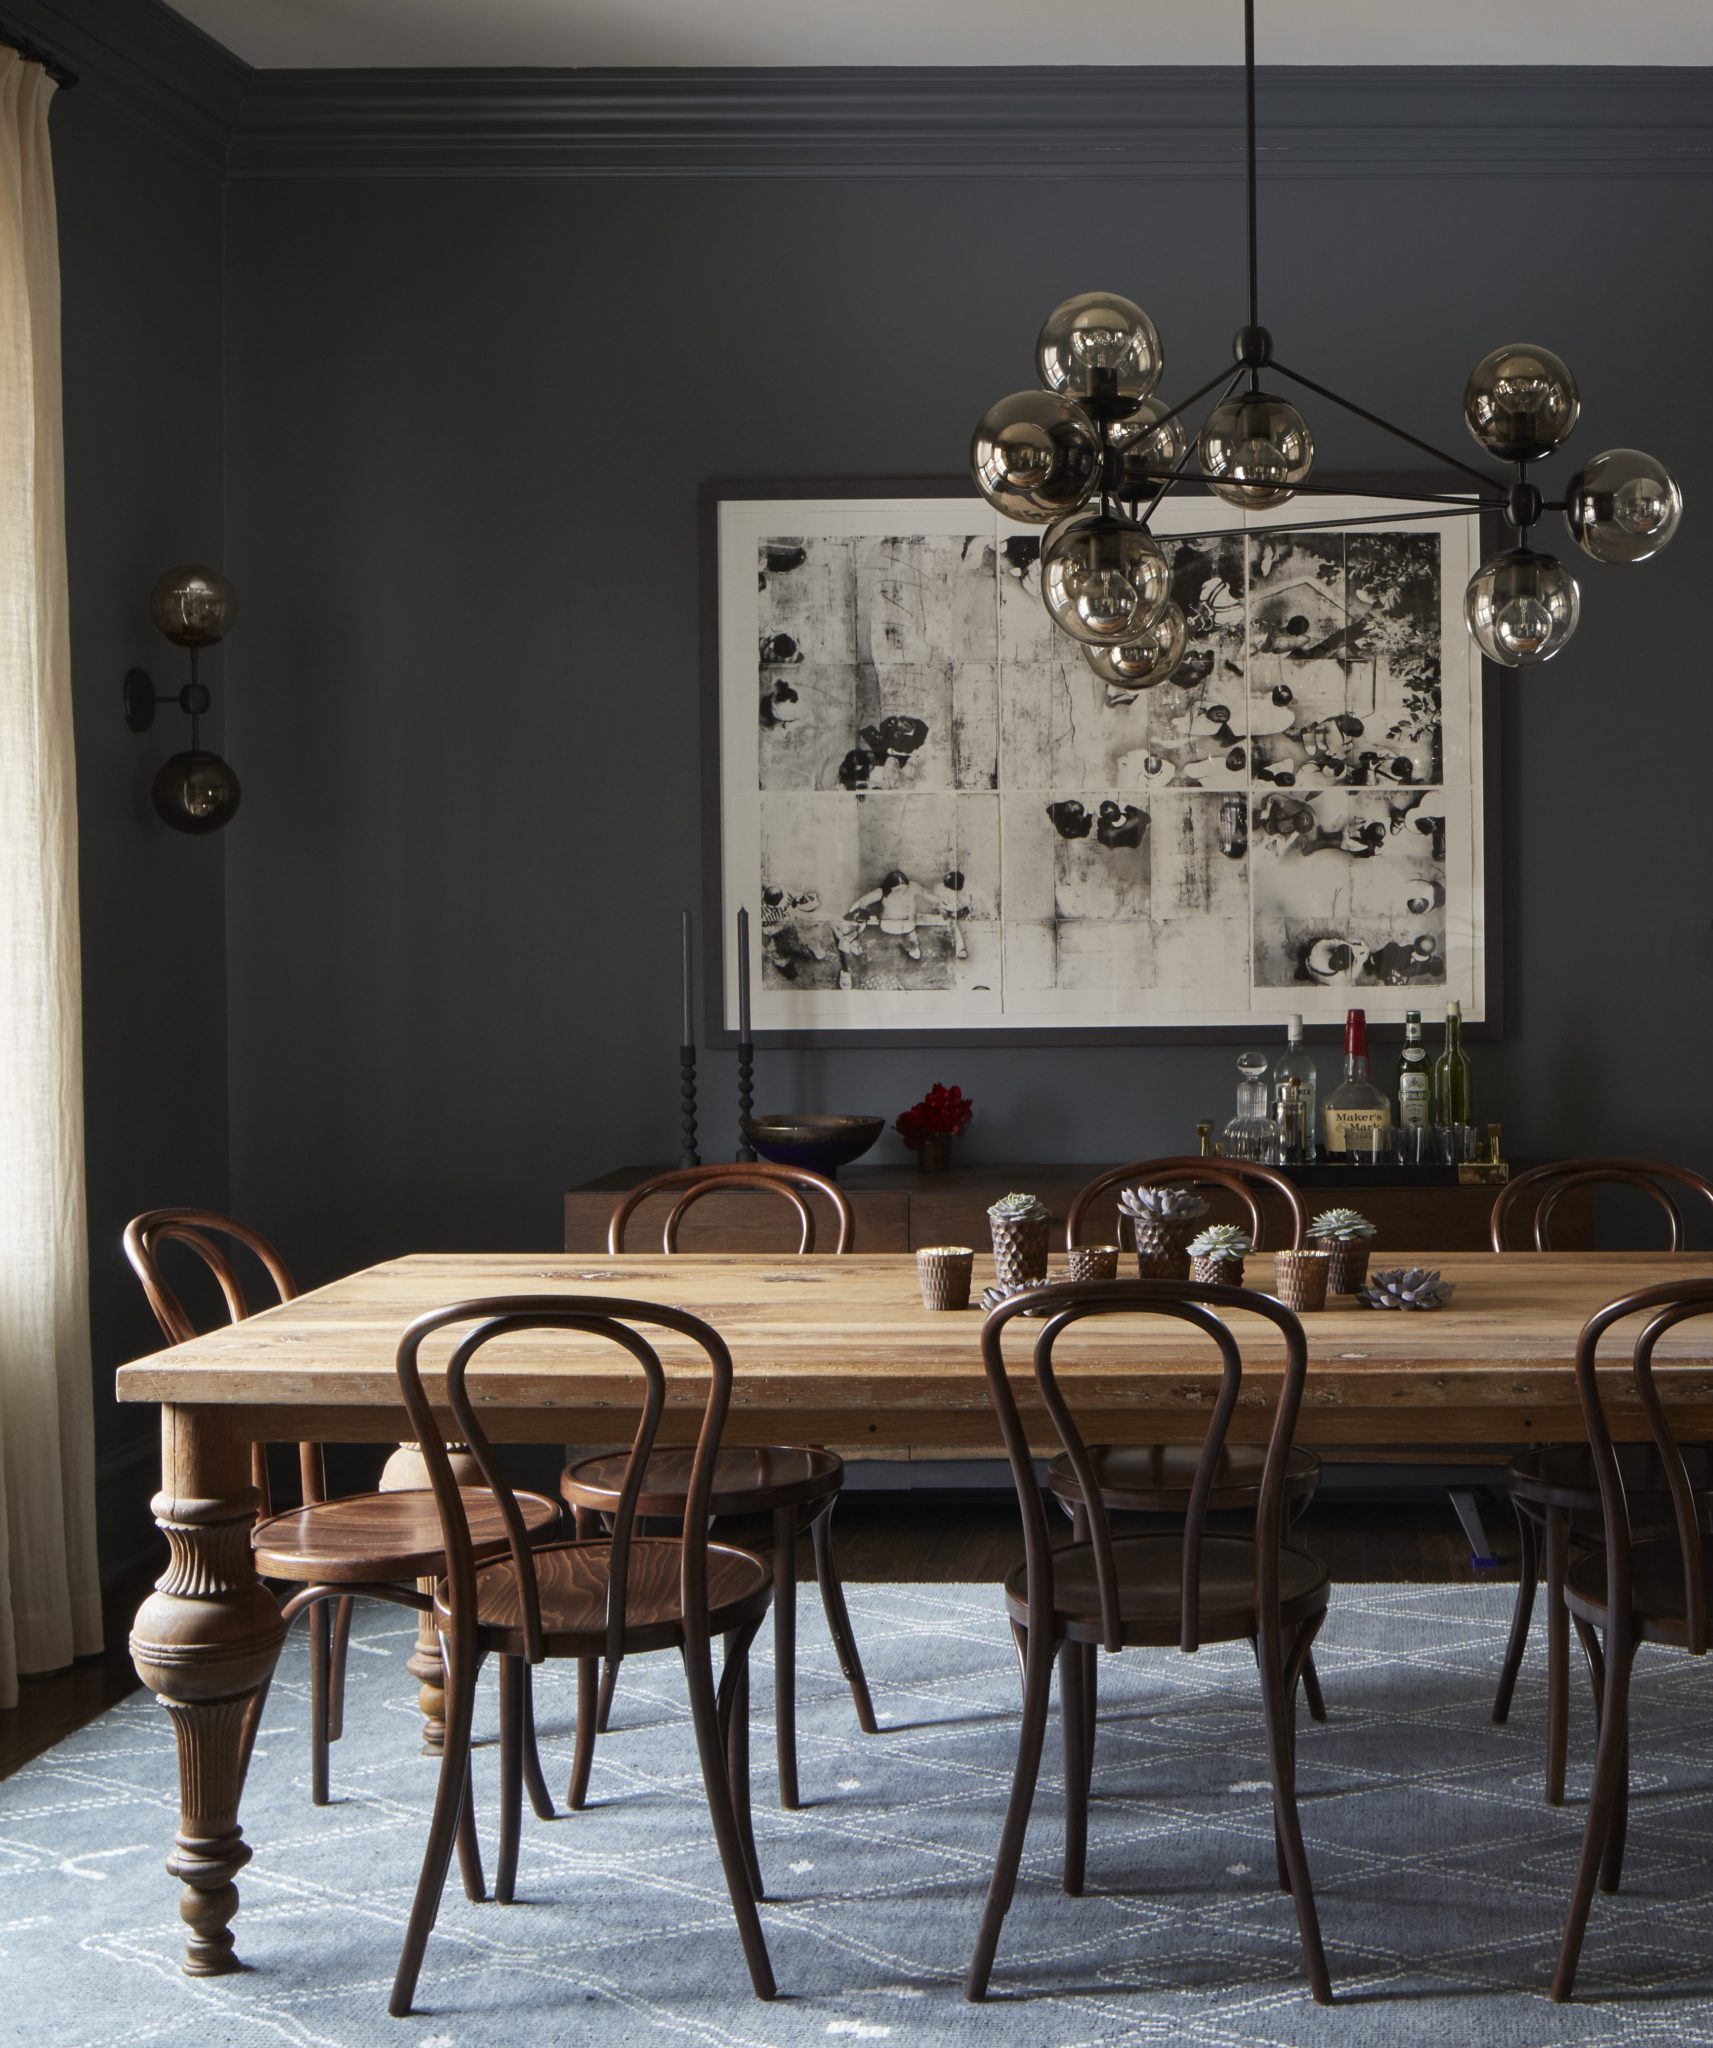 Dining room with dark walls and modern lighting by 2to5 Design